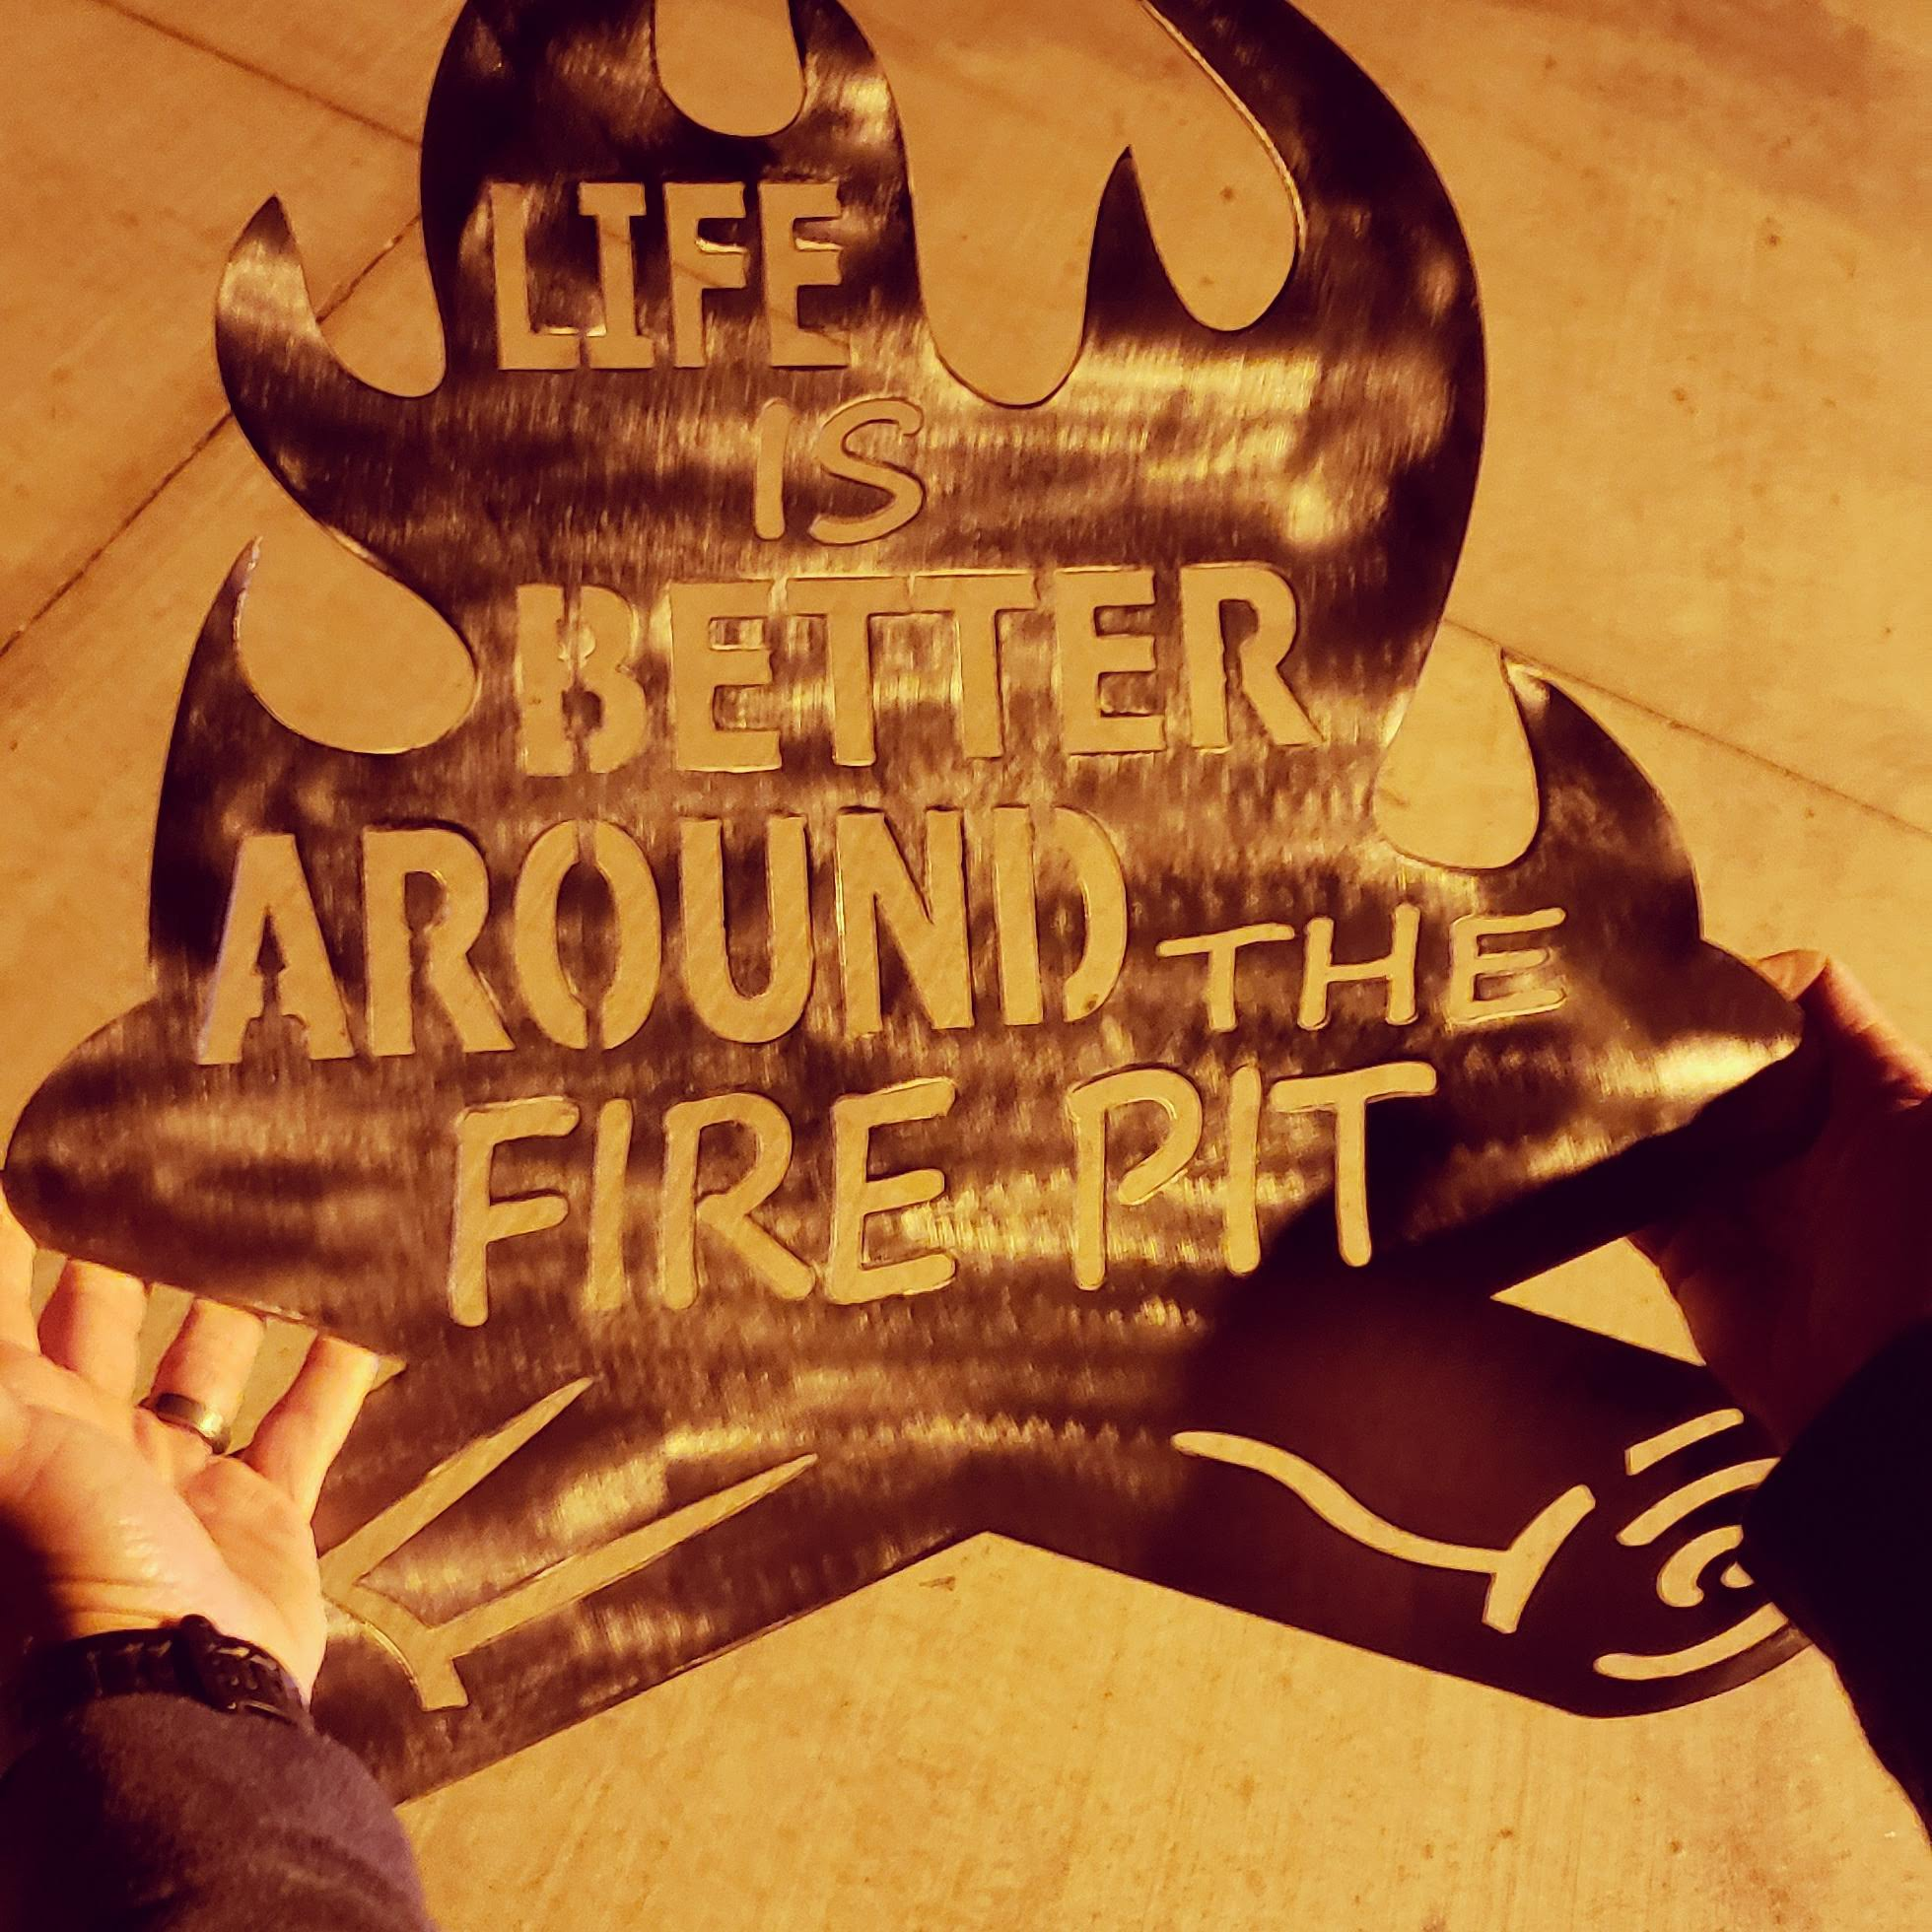 LIFE IS BETTER AROUND THE FIRE PIT